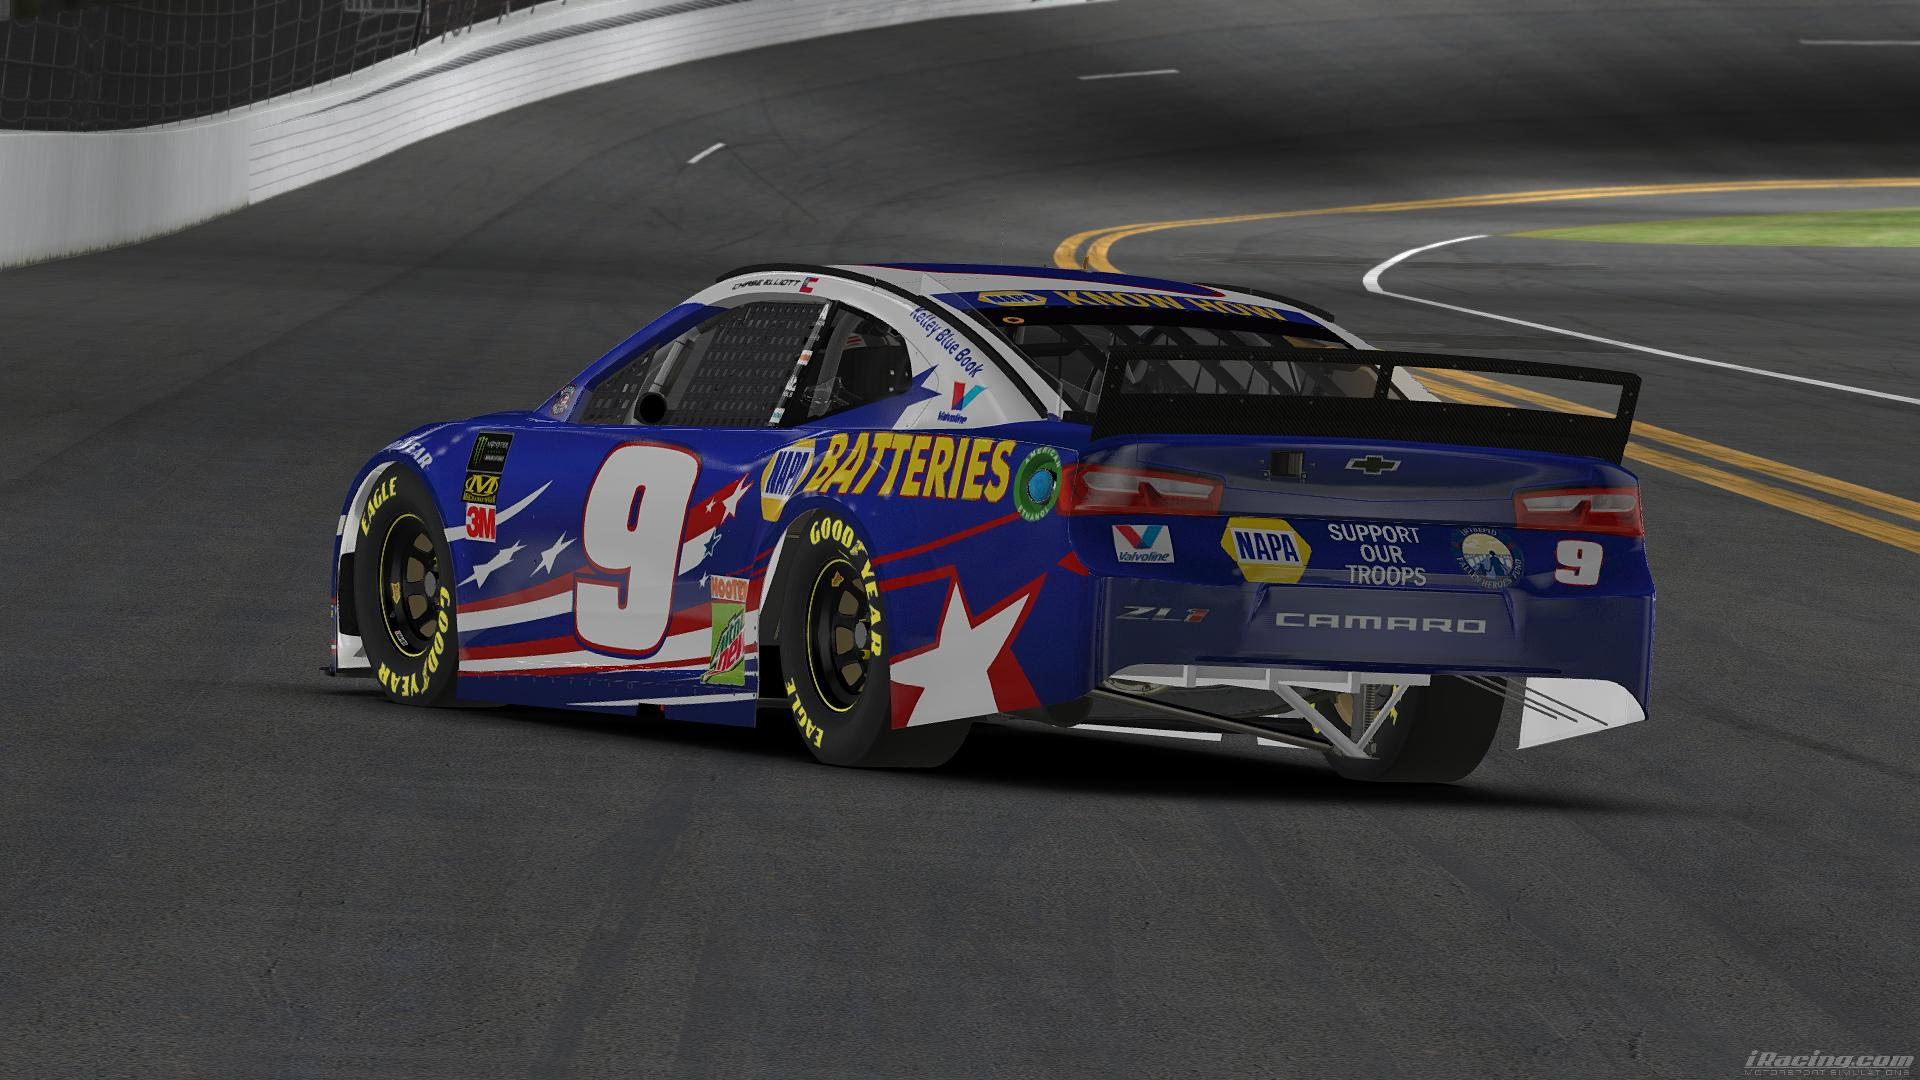 Preview of Chase Elliott Napa Patriotic 2019 by Alexander L Russell